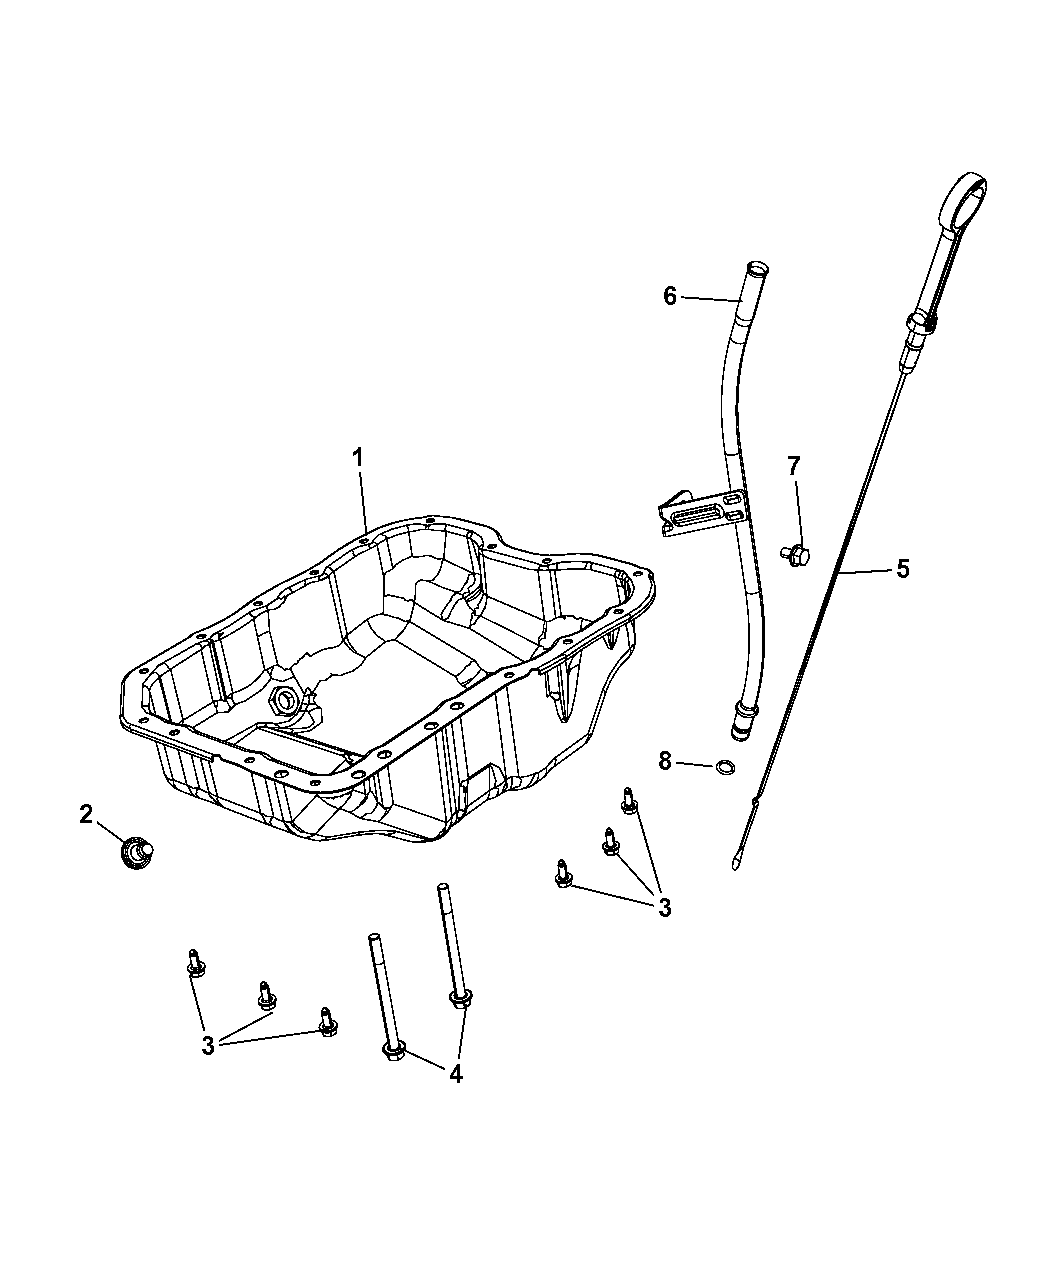 2012 Jeep Patriot Engine Oil Pan Level Indicator Diagram Of Related Parts Thumbnail